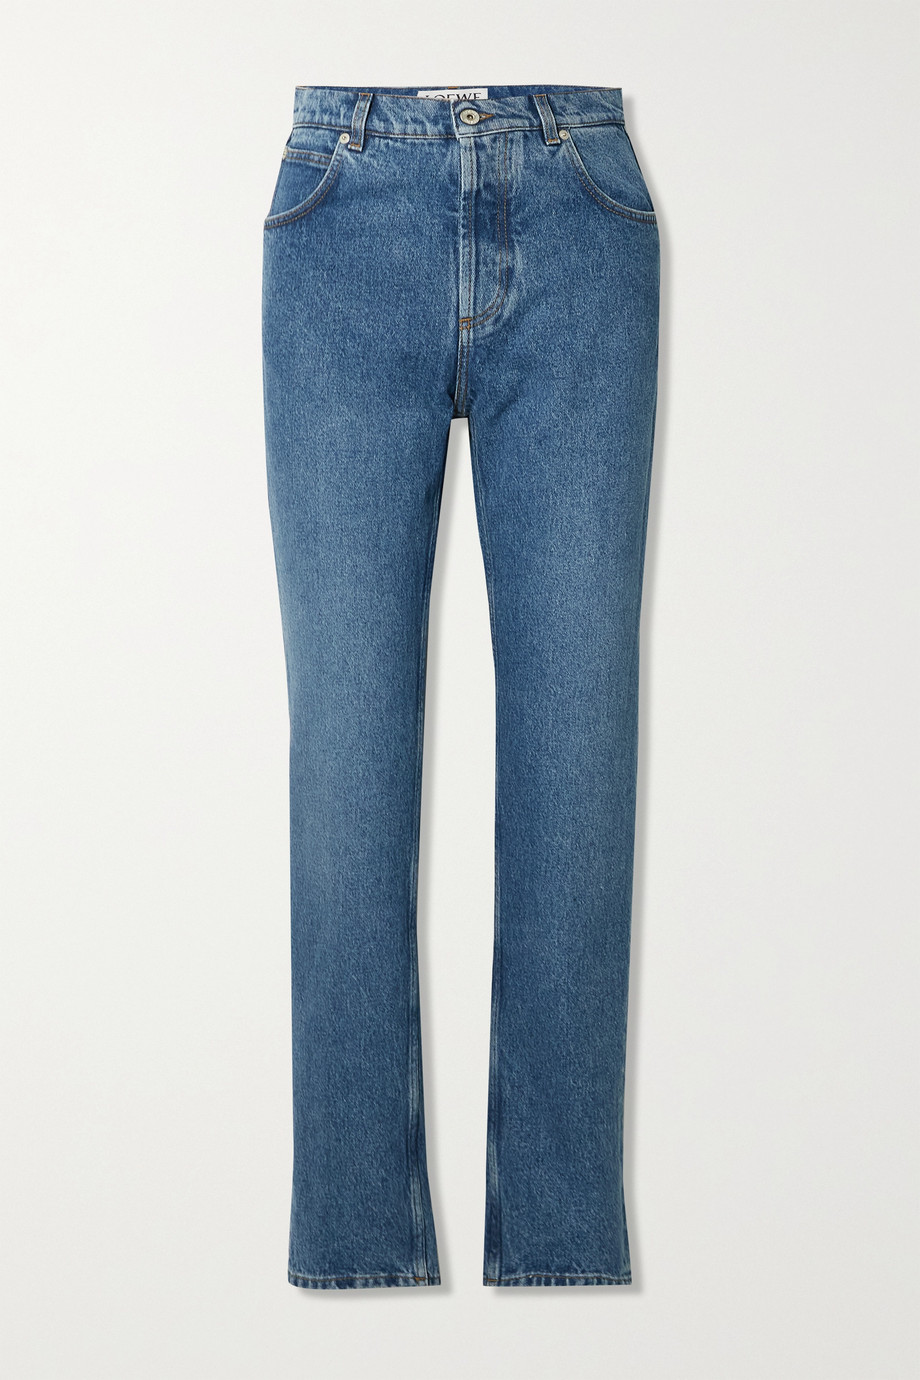 Loewe Leather-trimmed high-rise straight-leg jeans